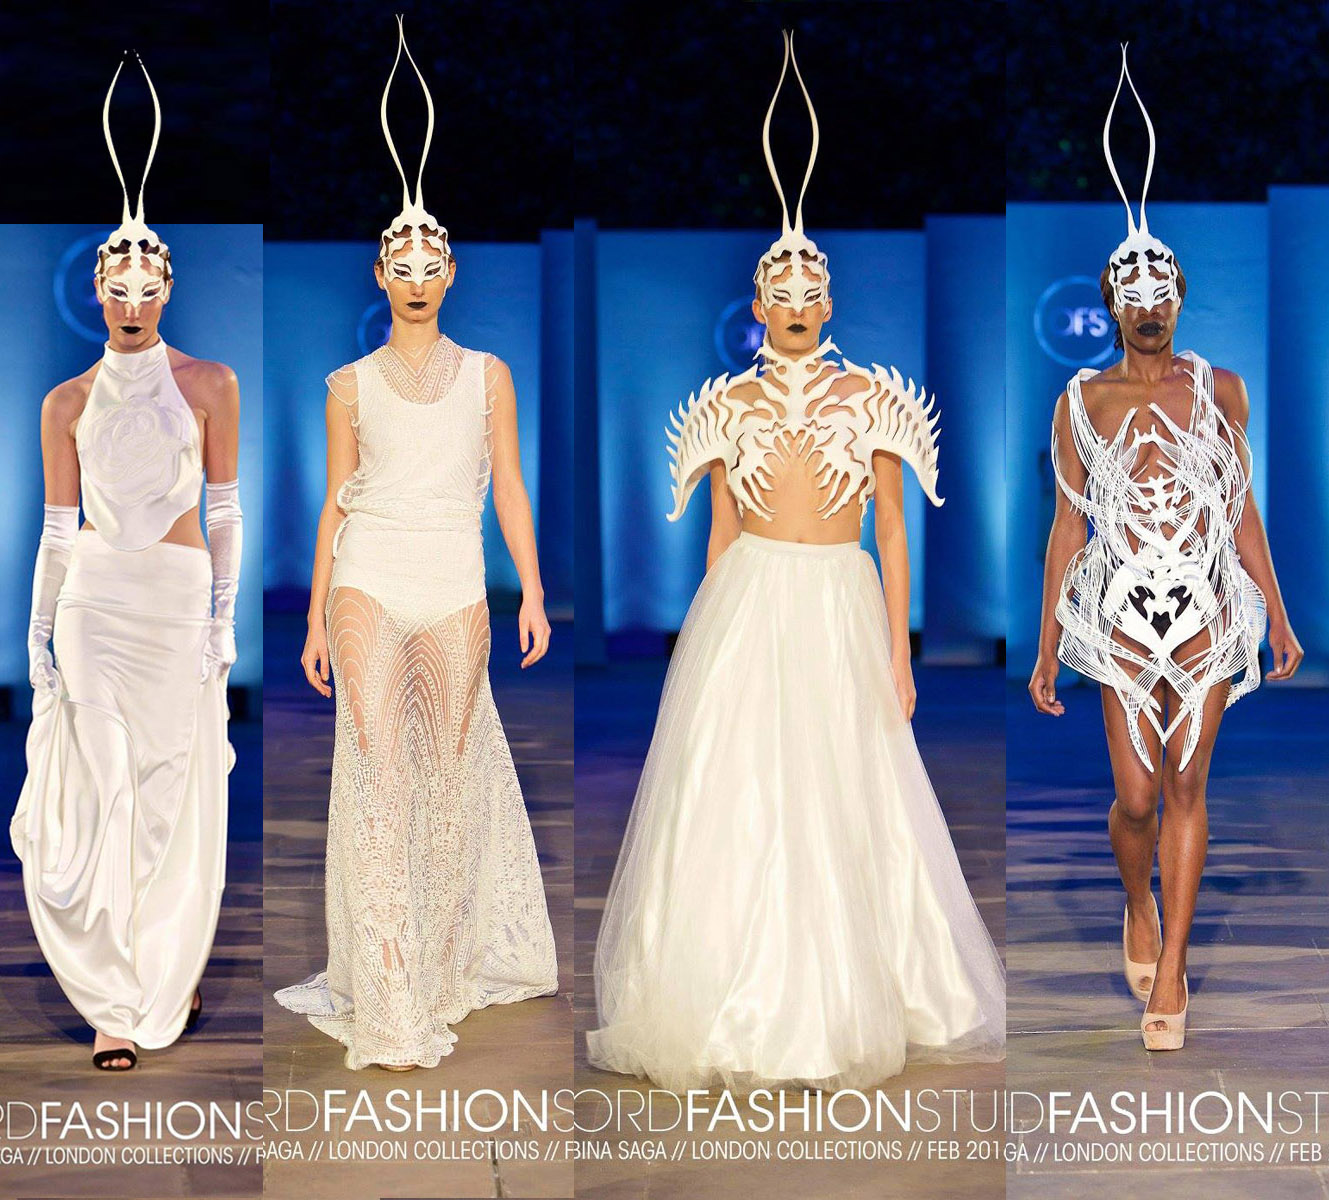 A Modern View Of Fashion And Technology 3d Printed Bridal Collection By Sabina Saga At Technology Hub Else Research By Else Corp